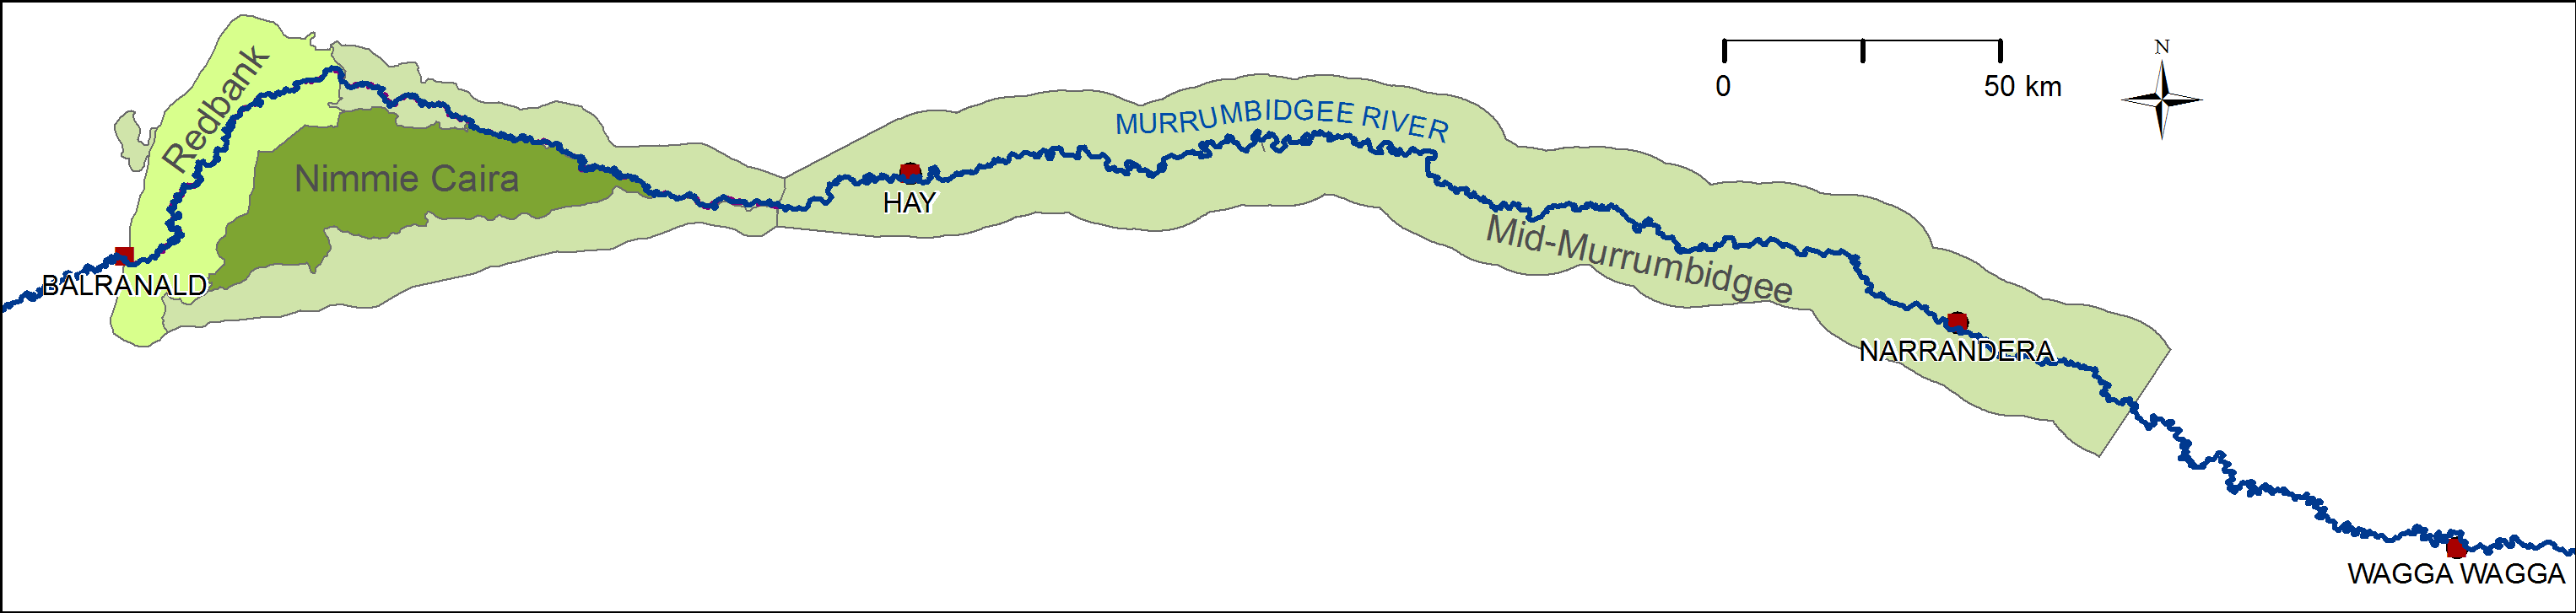 Map Murrumbidgee